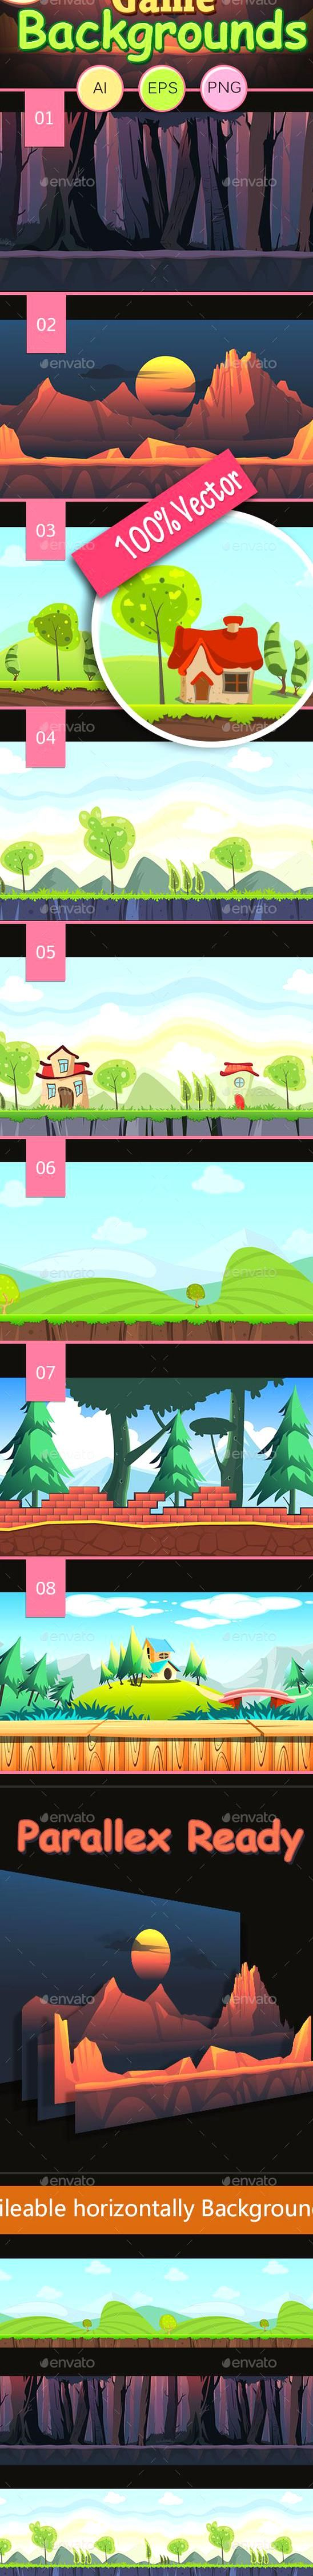 8 Vector Game Backgrounds Backgrounds Game Assets 2d